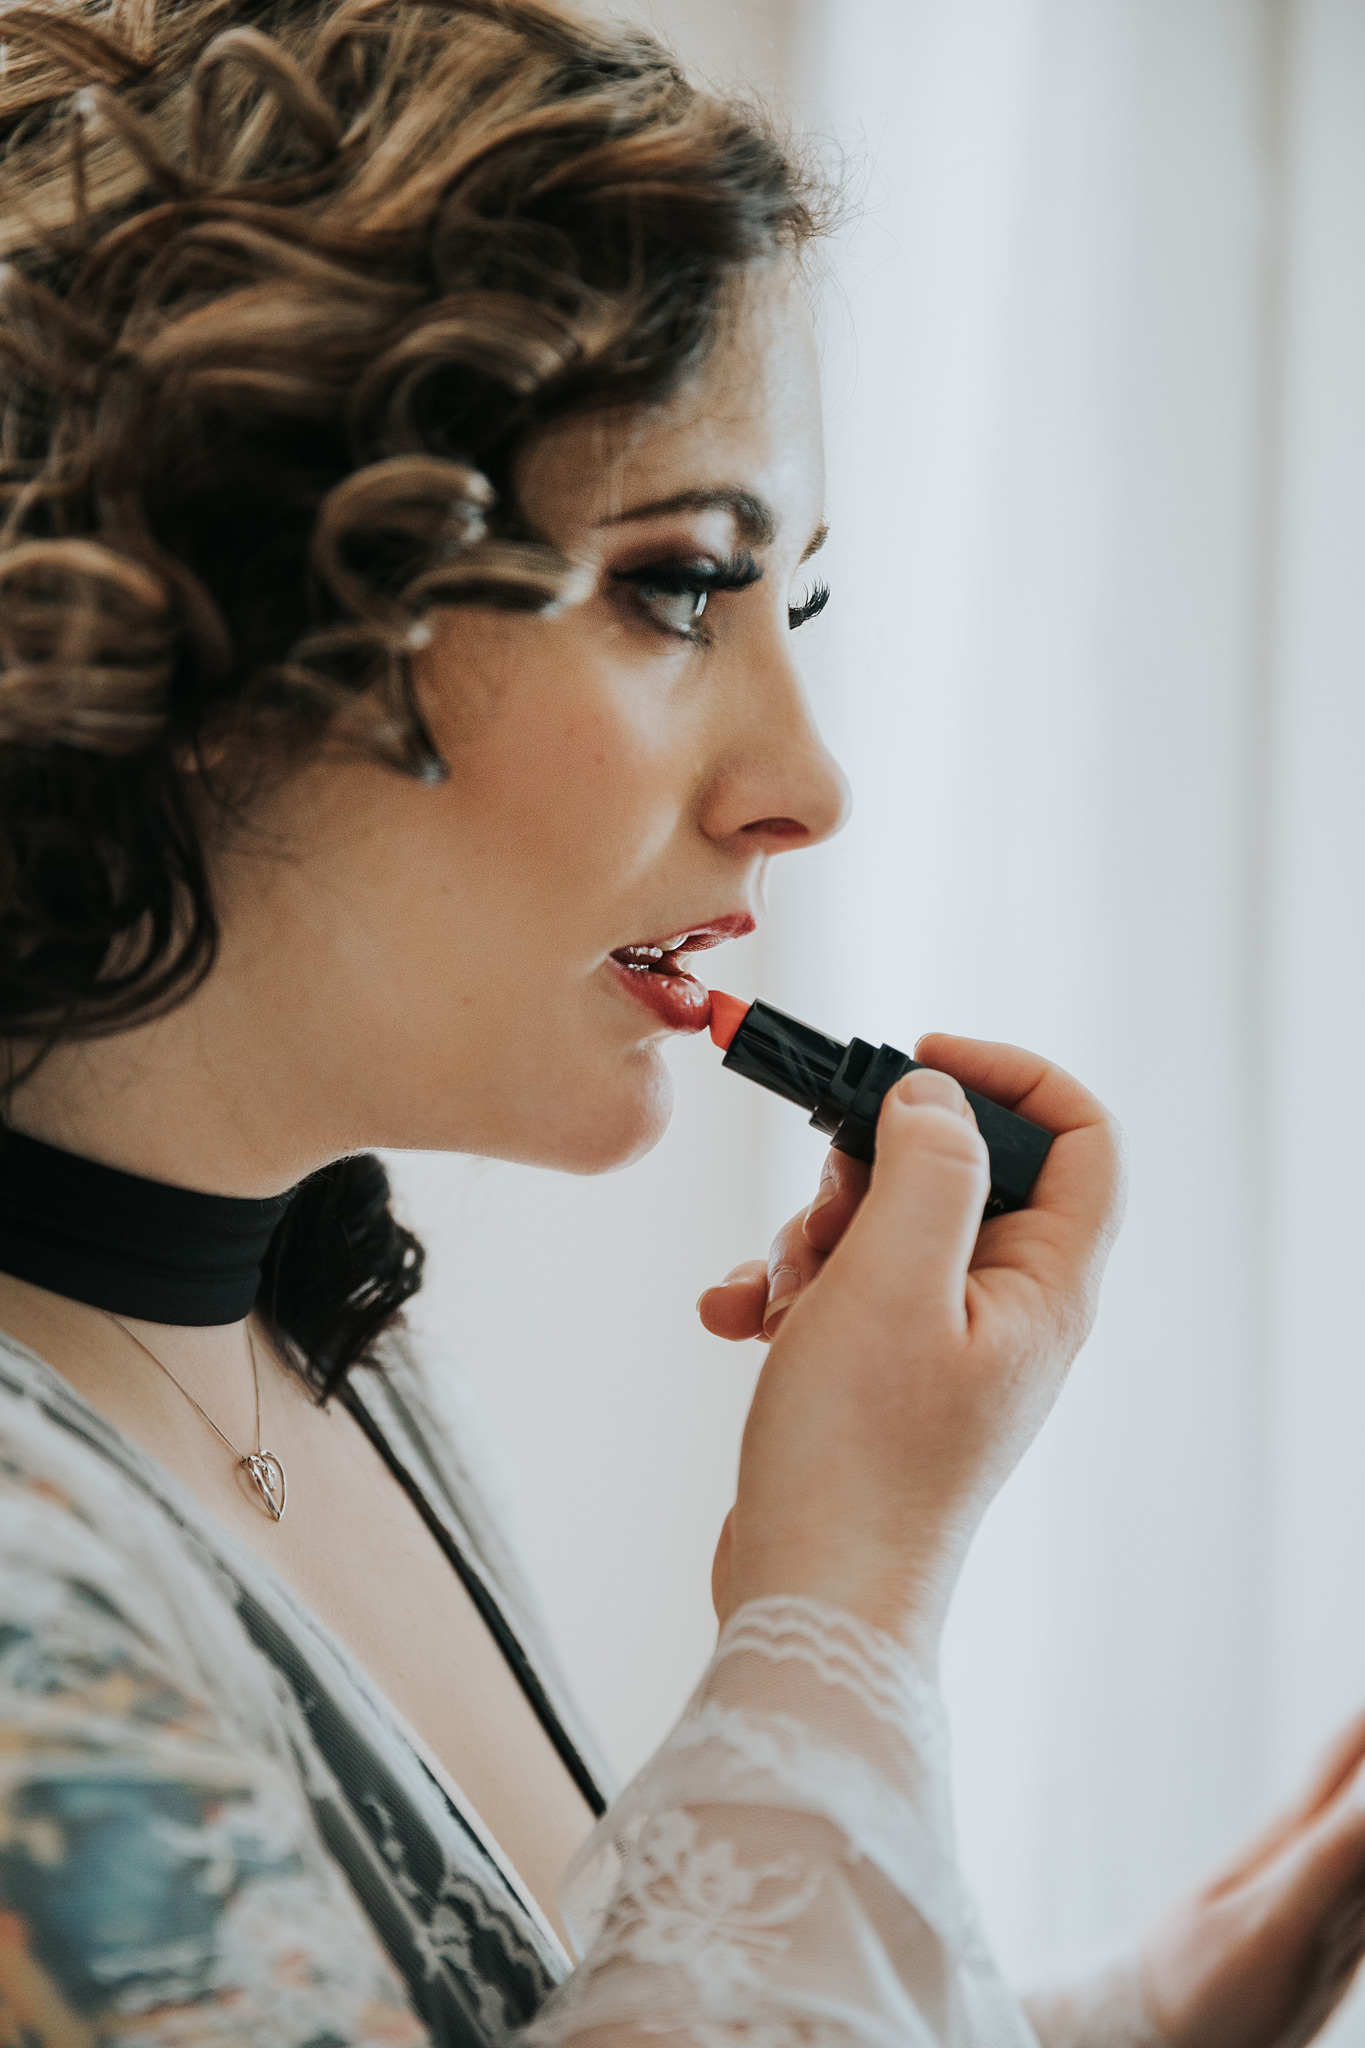 woman applying lipstick in mirror bridal boudoir photo